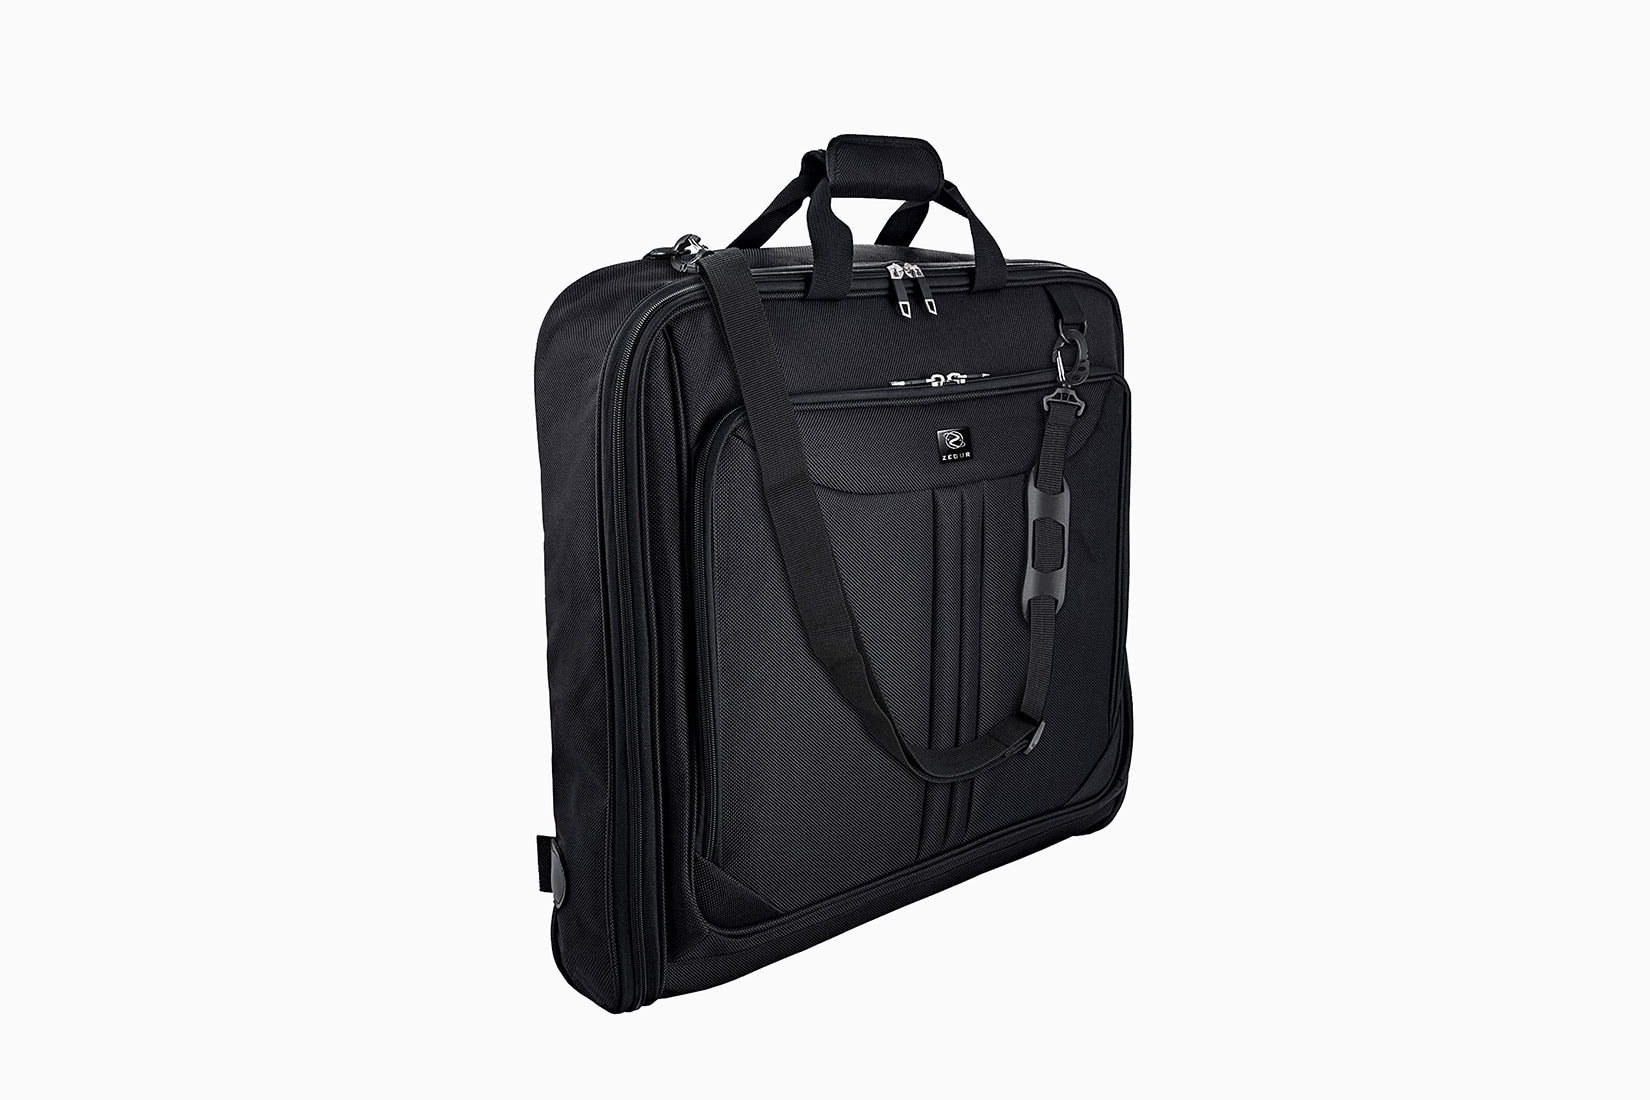 best garment bags value zegur review - Luxe Digital